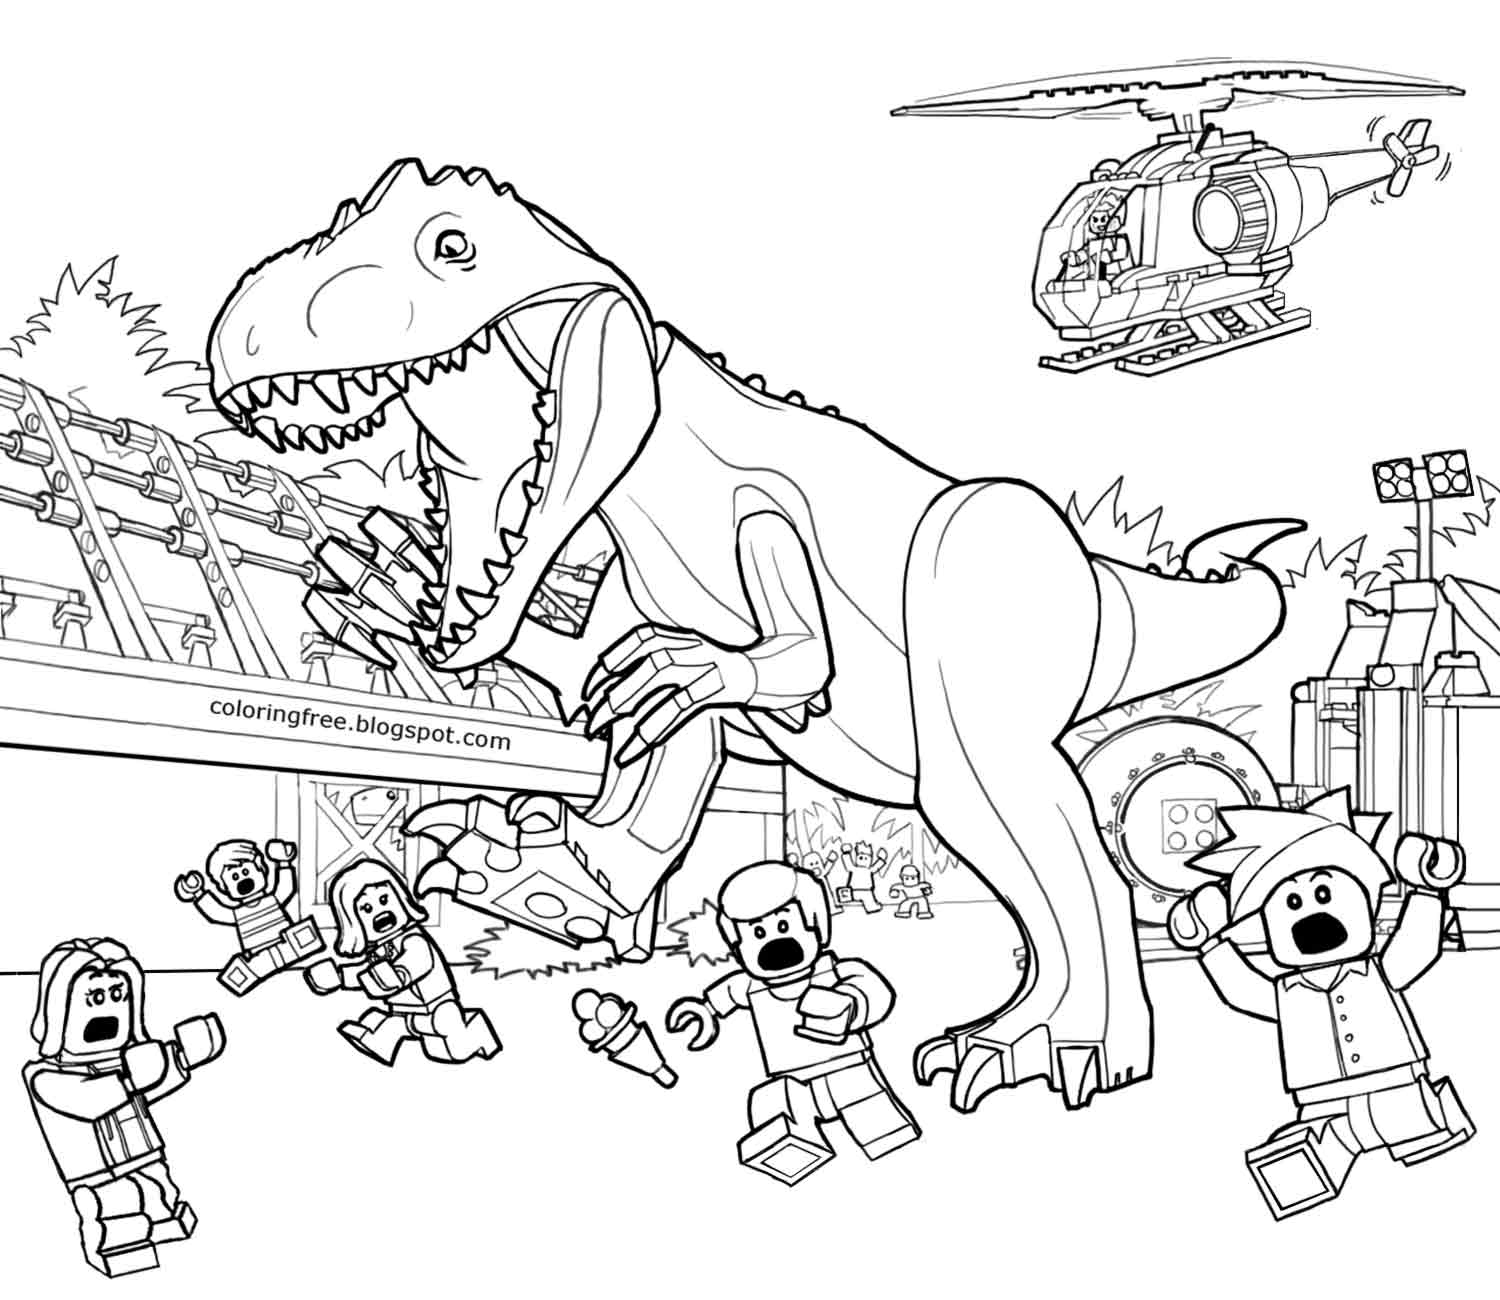 1500x1300 Jurassic Park Raptor Coloring Pages Gallery